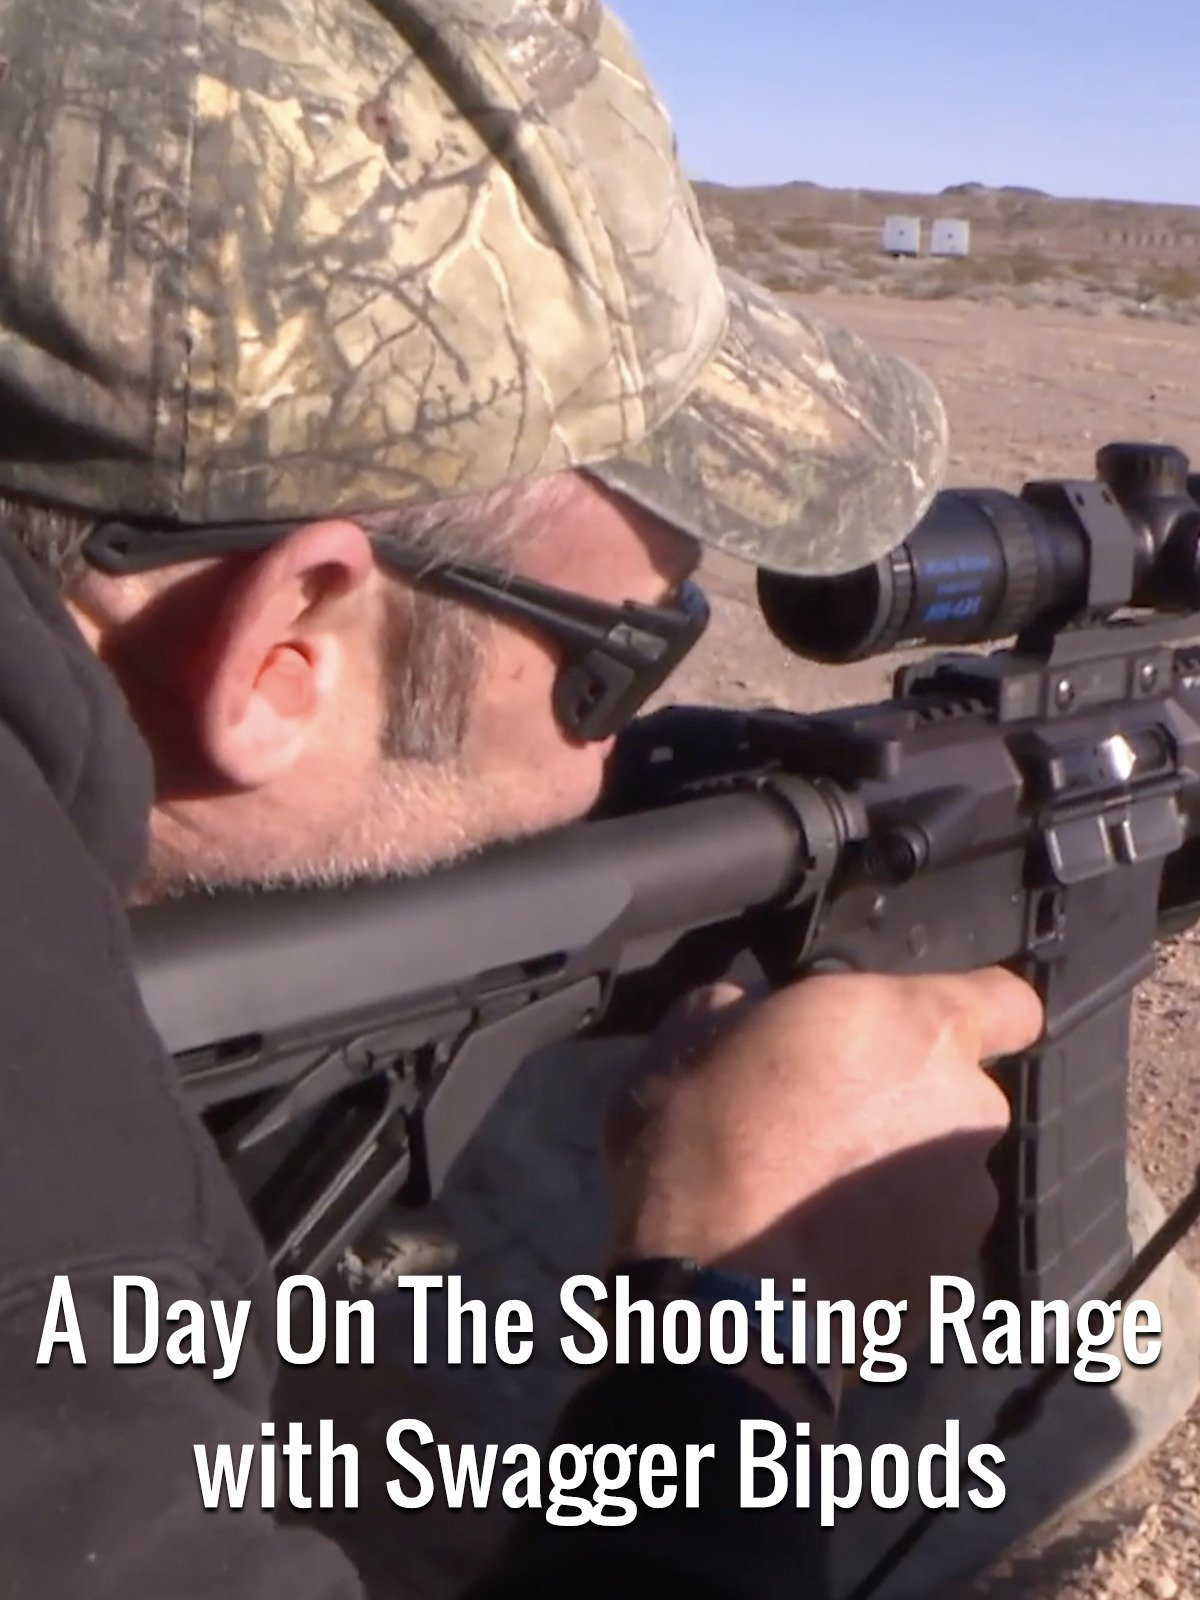 A Day On The Shooting Range with Swagger Bipods